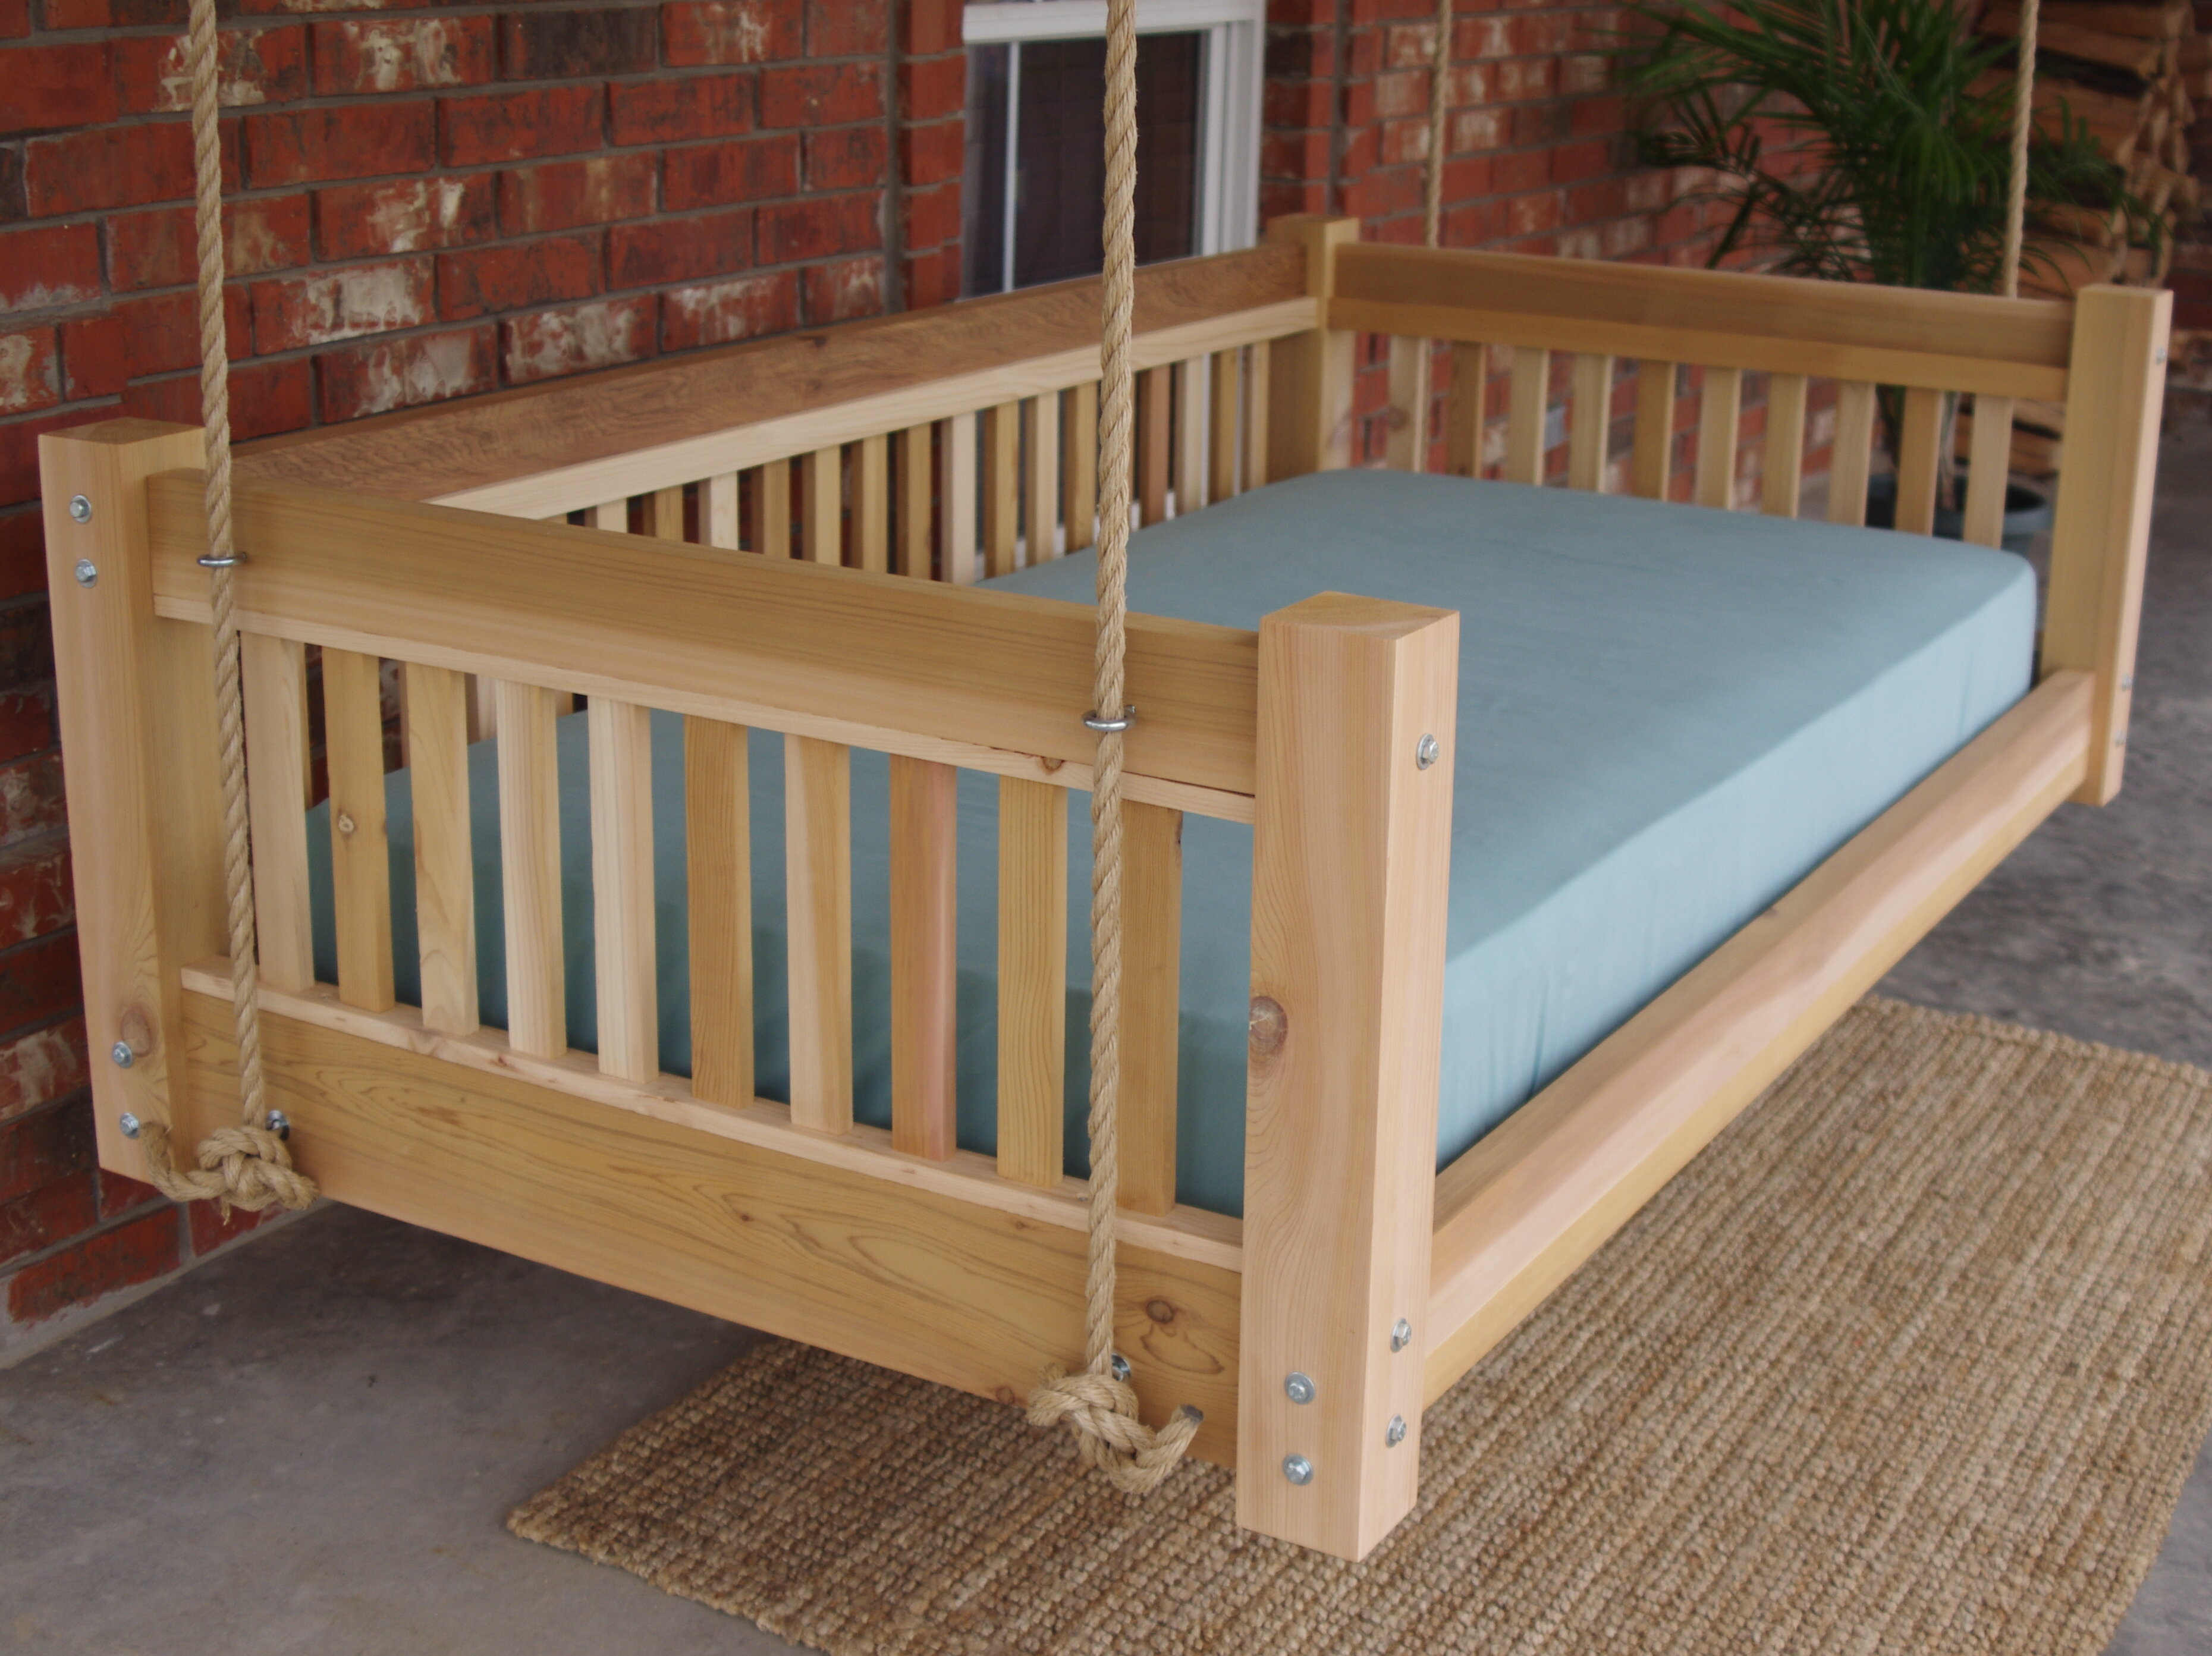 Picture of: Millwood Pines Longbridge Cedar Hanging Daybed Rope Porch Swing